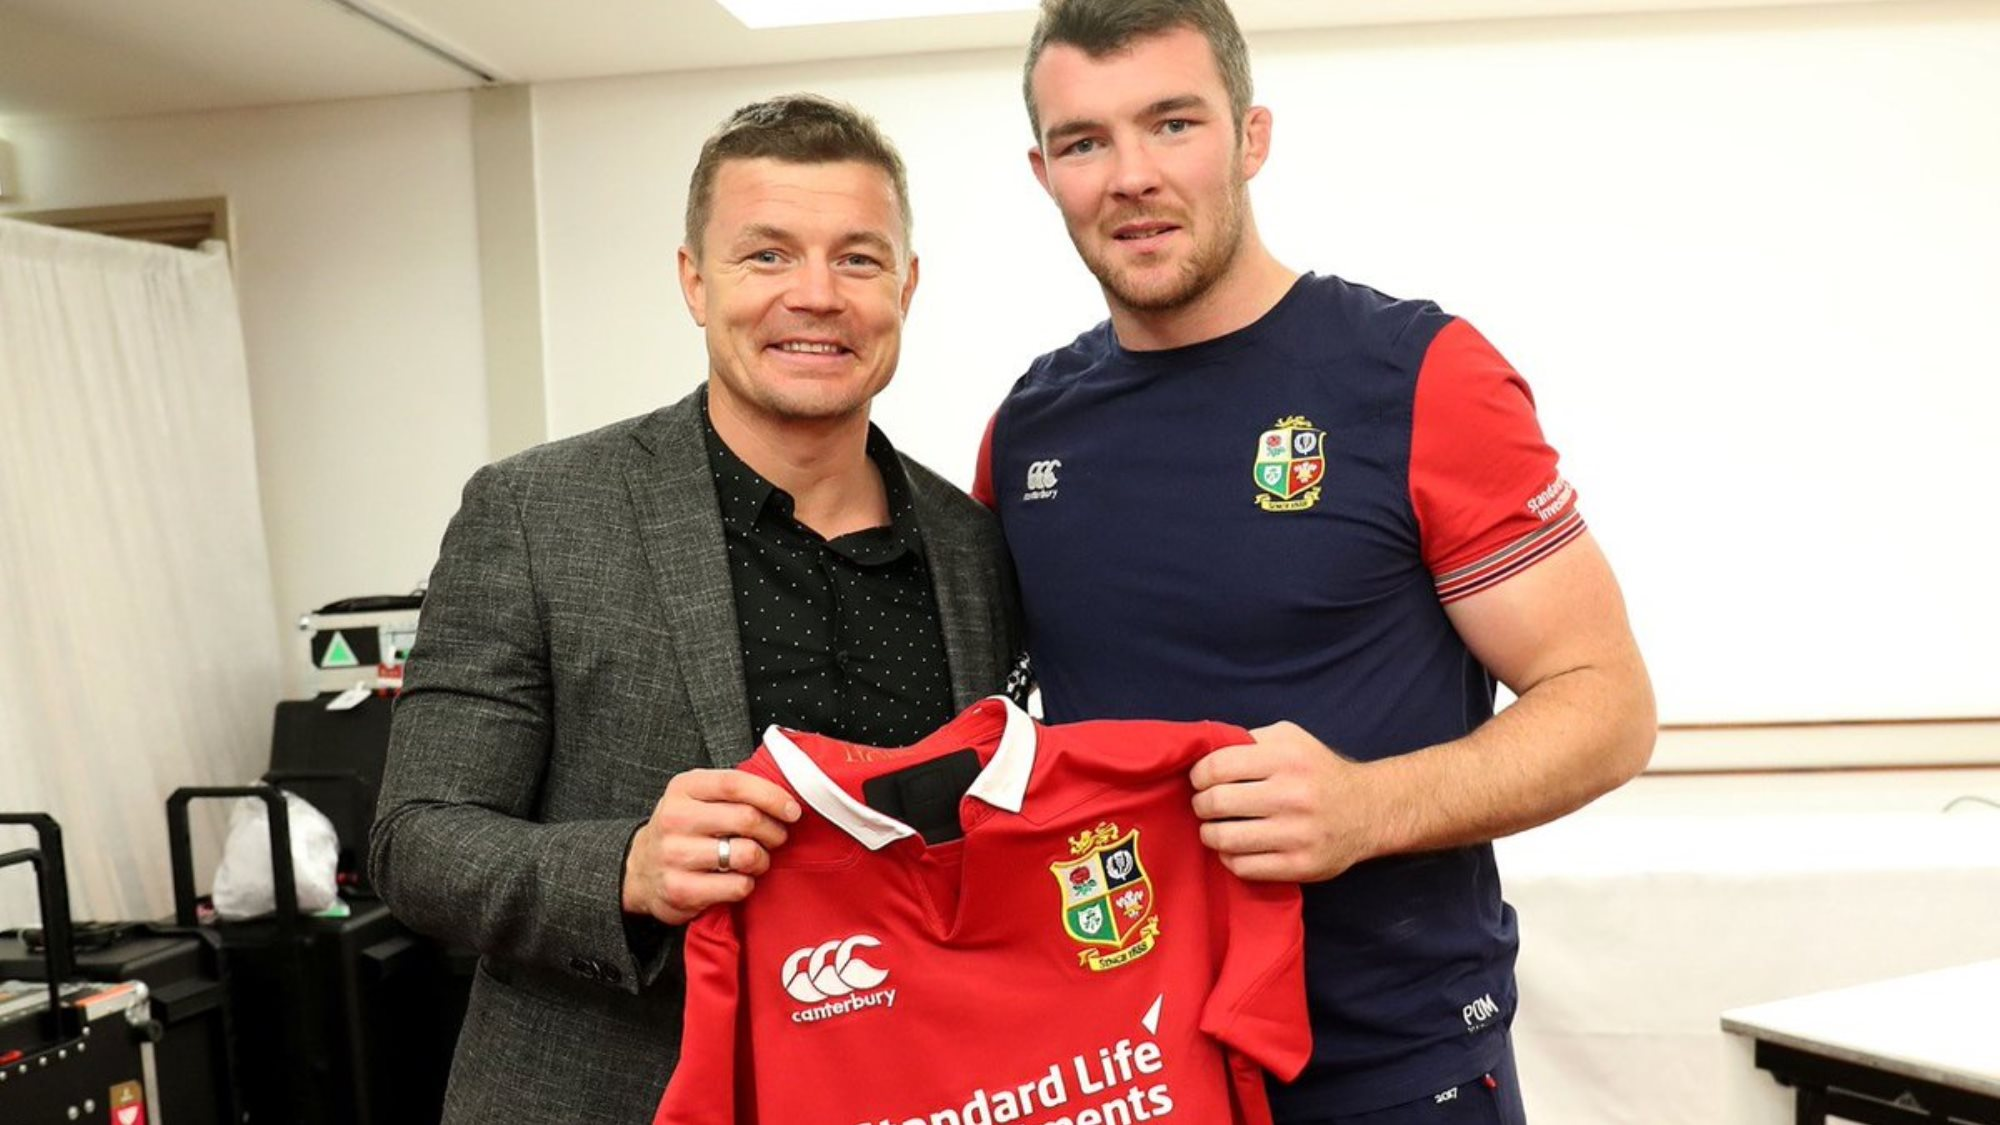 Brian O'Driscoll presents Test jerseys on eve of All Blacks clash